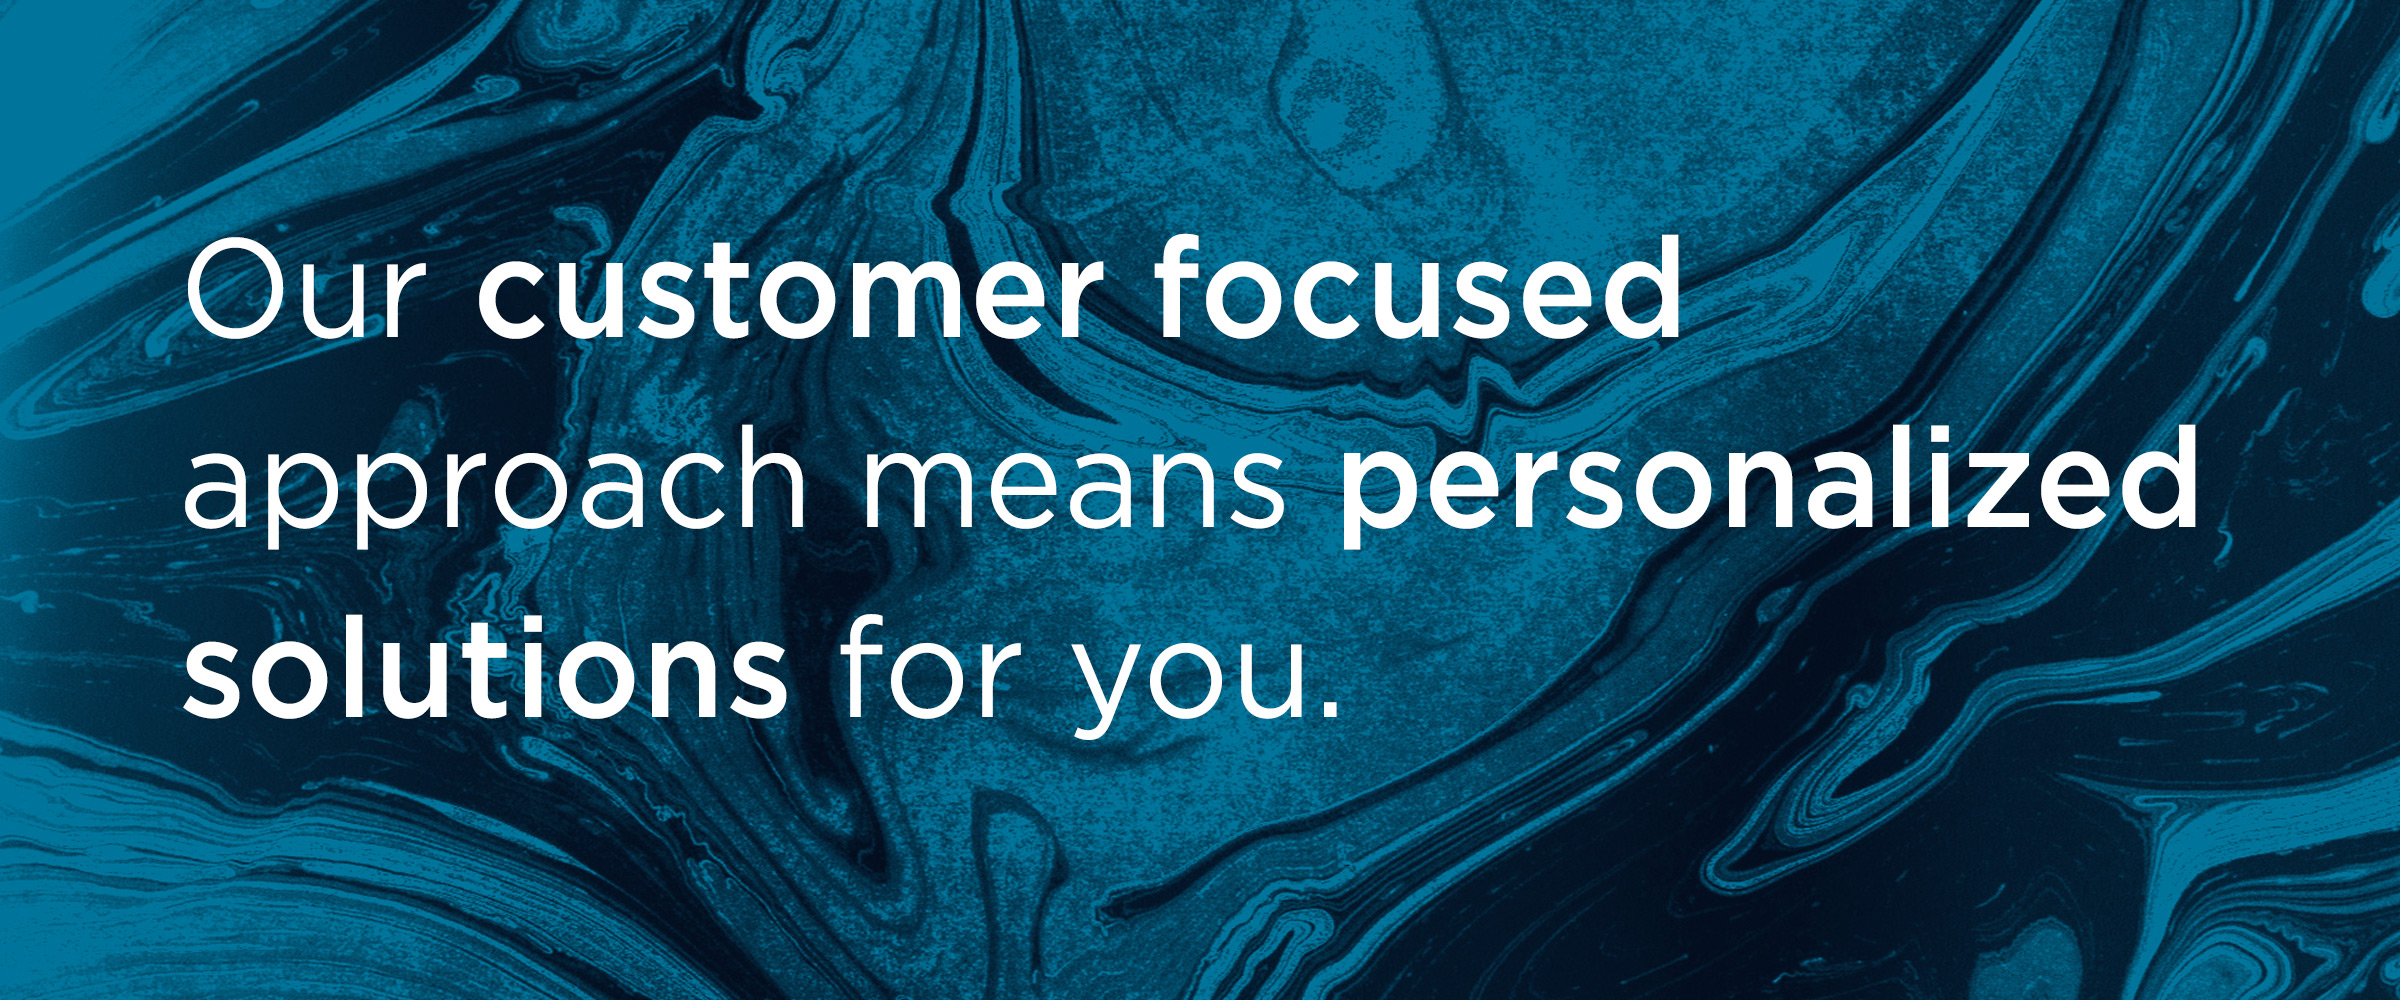 Our customer focused approach means personalized solutions for you